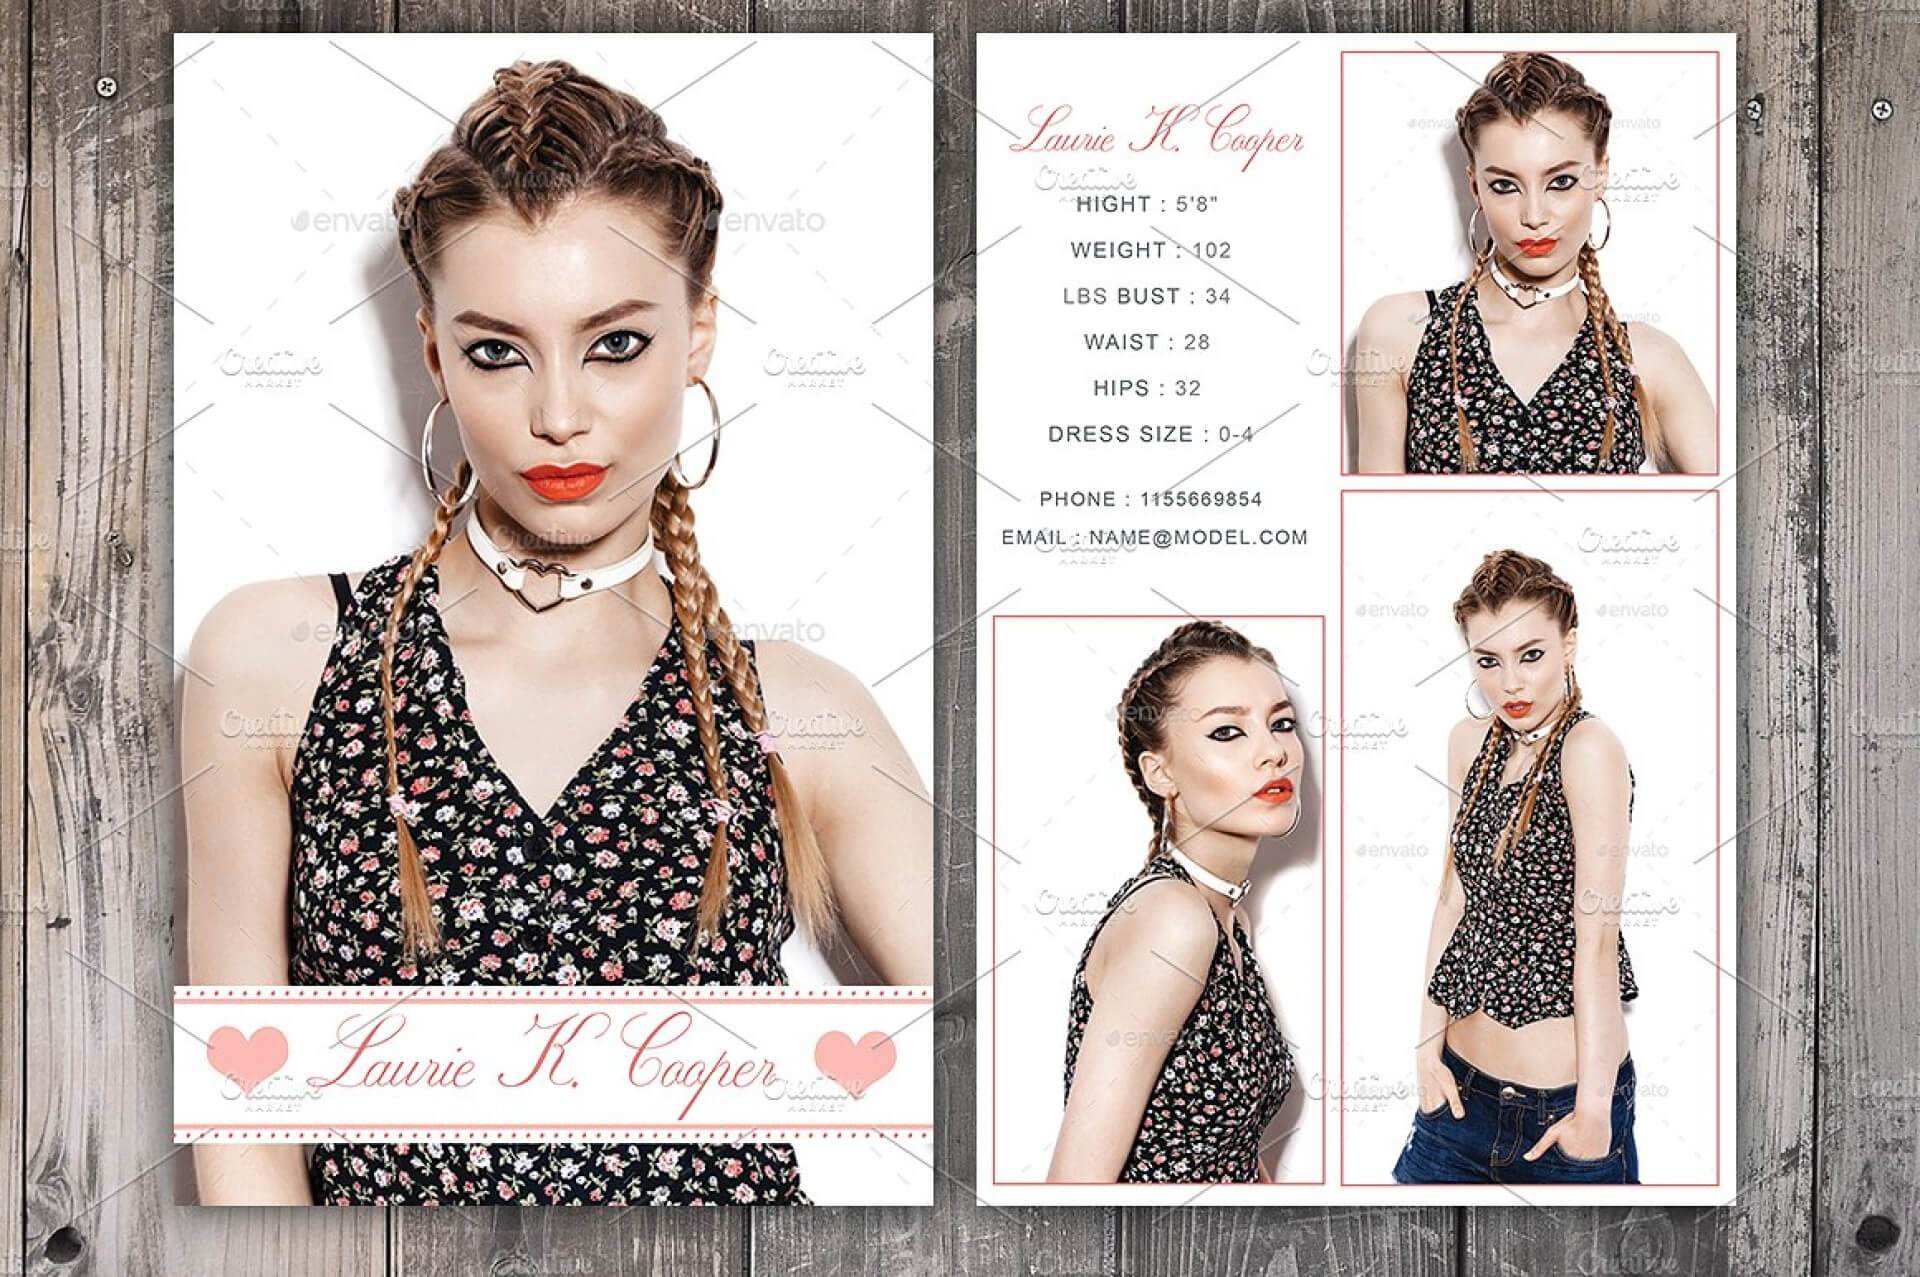 Download Comp Card Template - Atlantaauctionco with regard to Comp Card Template Download